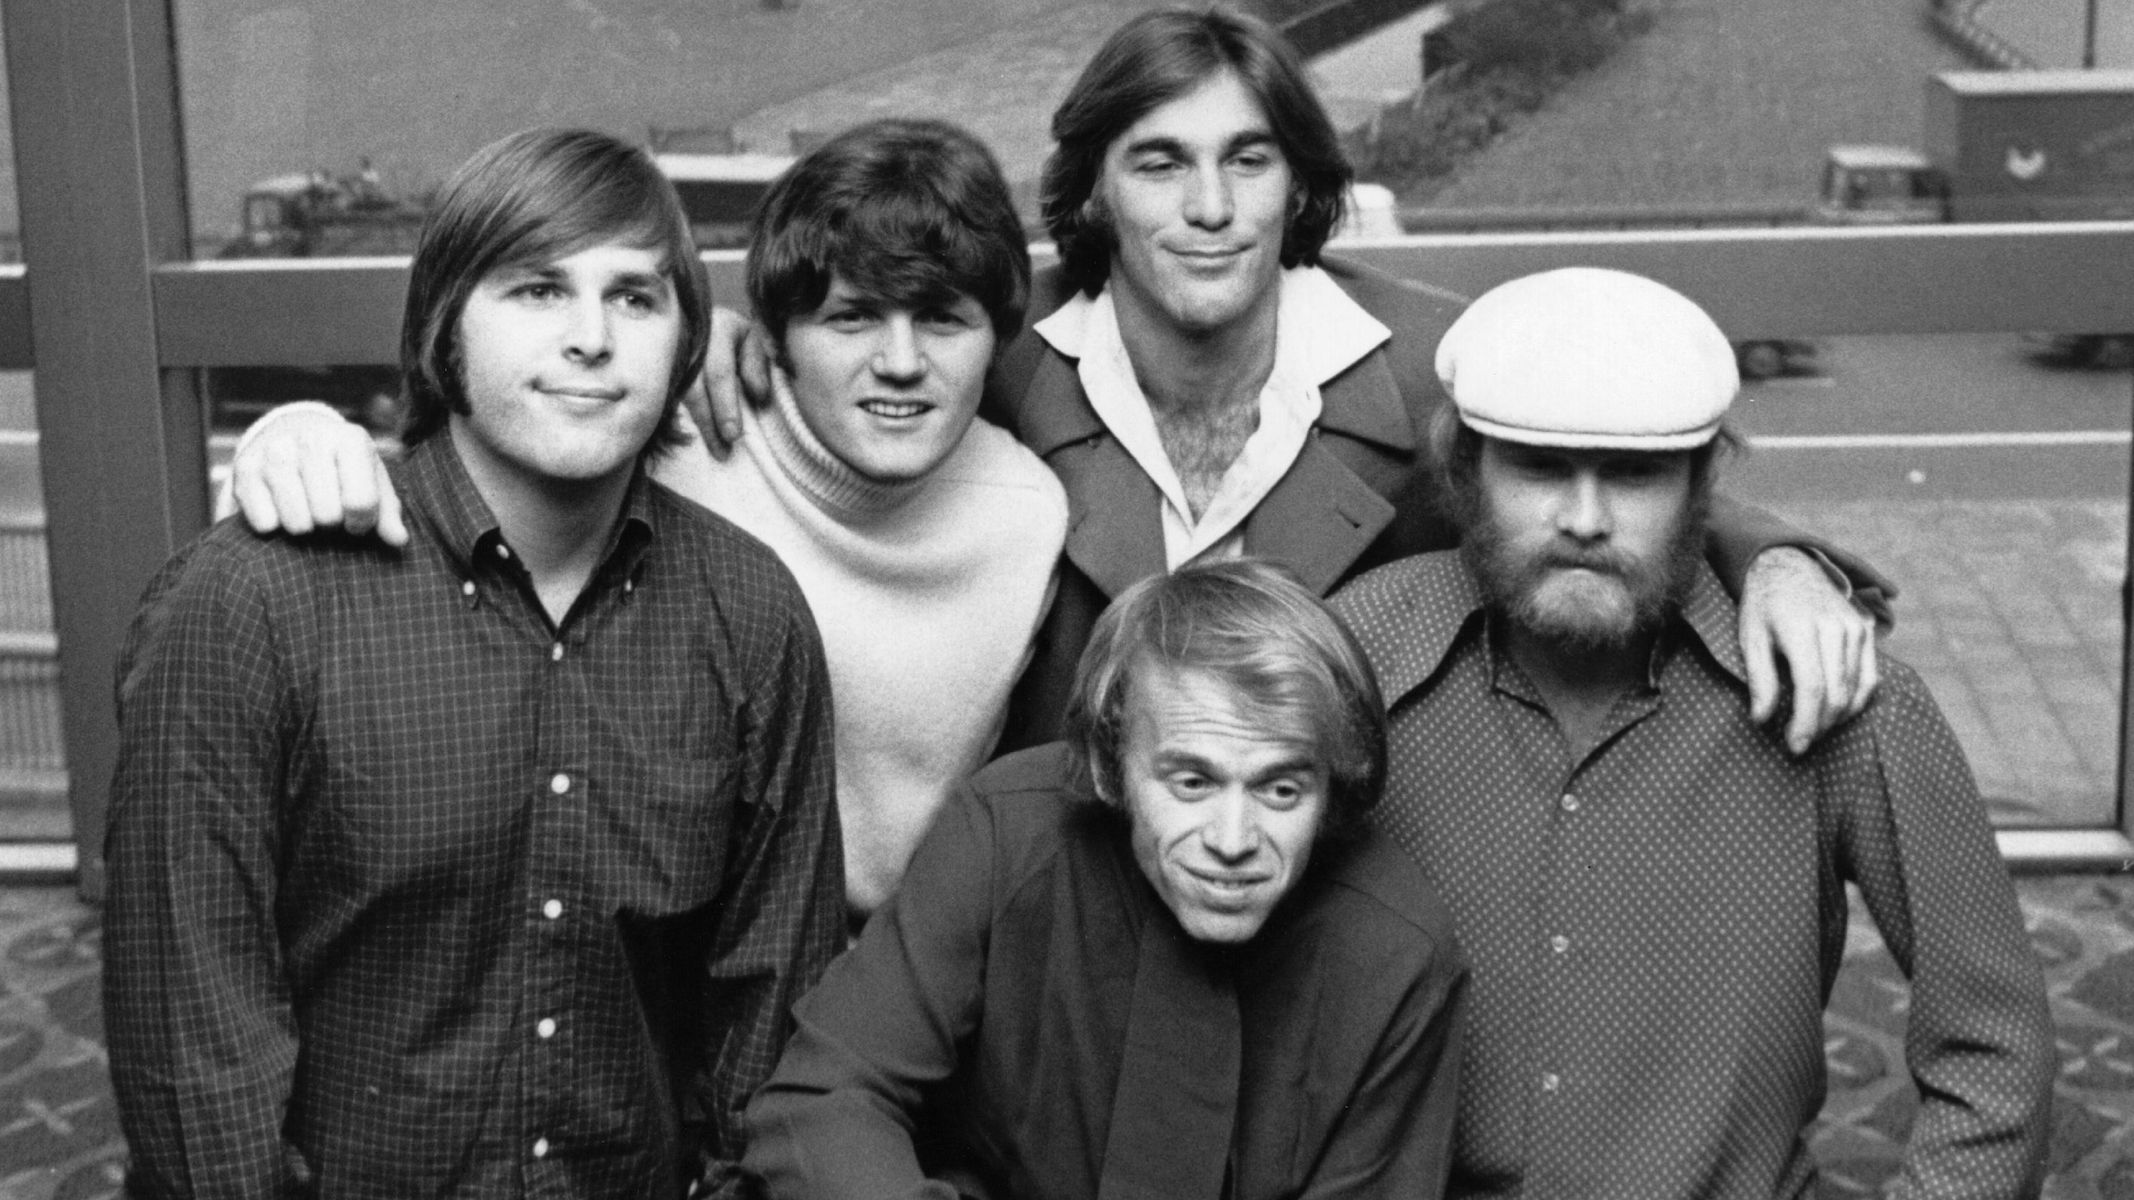 Hear The 5 Original Beach Boys Present Their Surf Hits on This Day in 1979